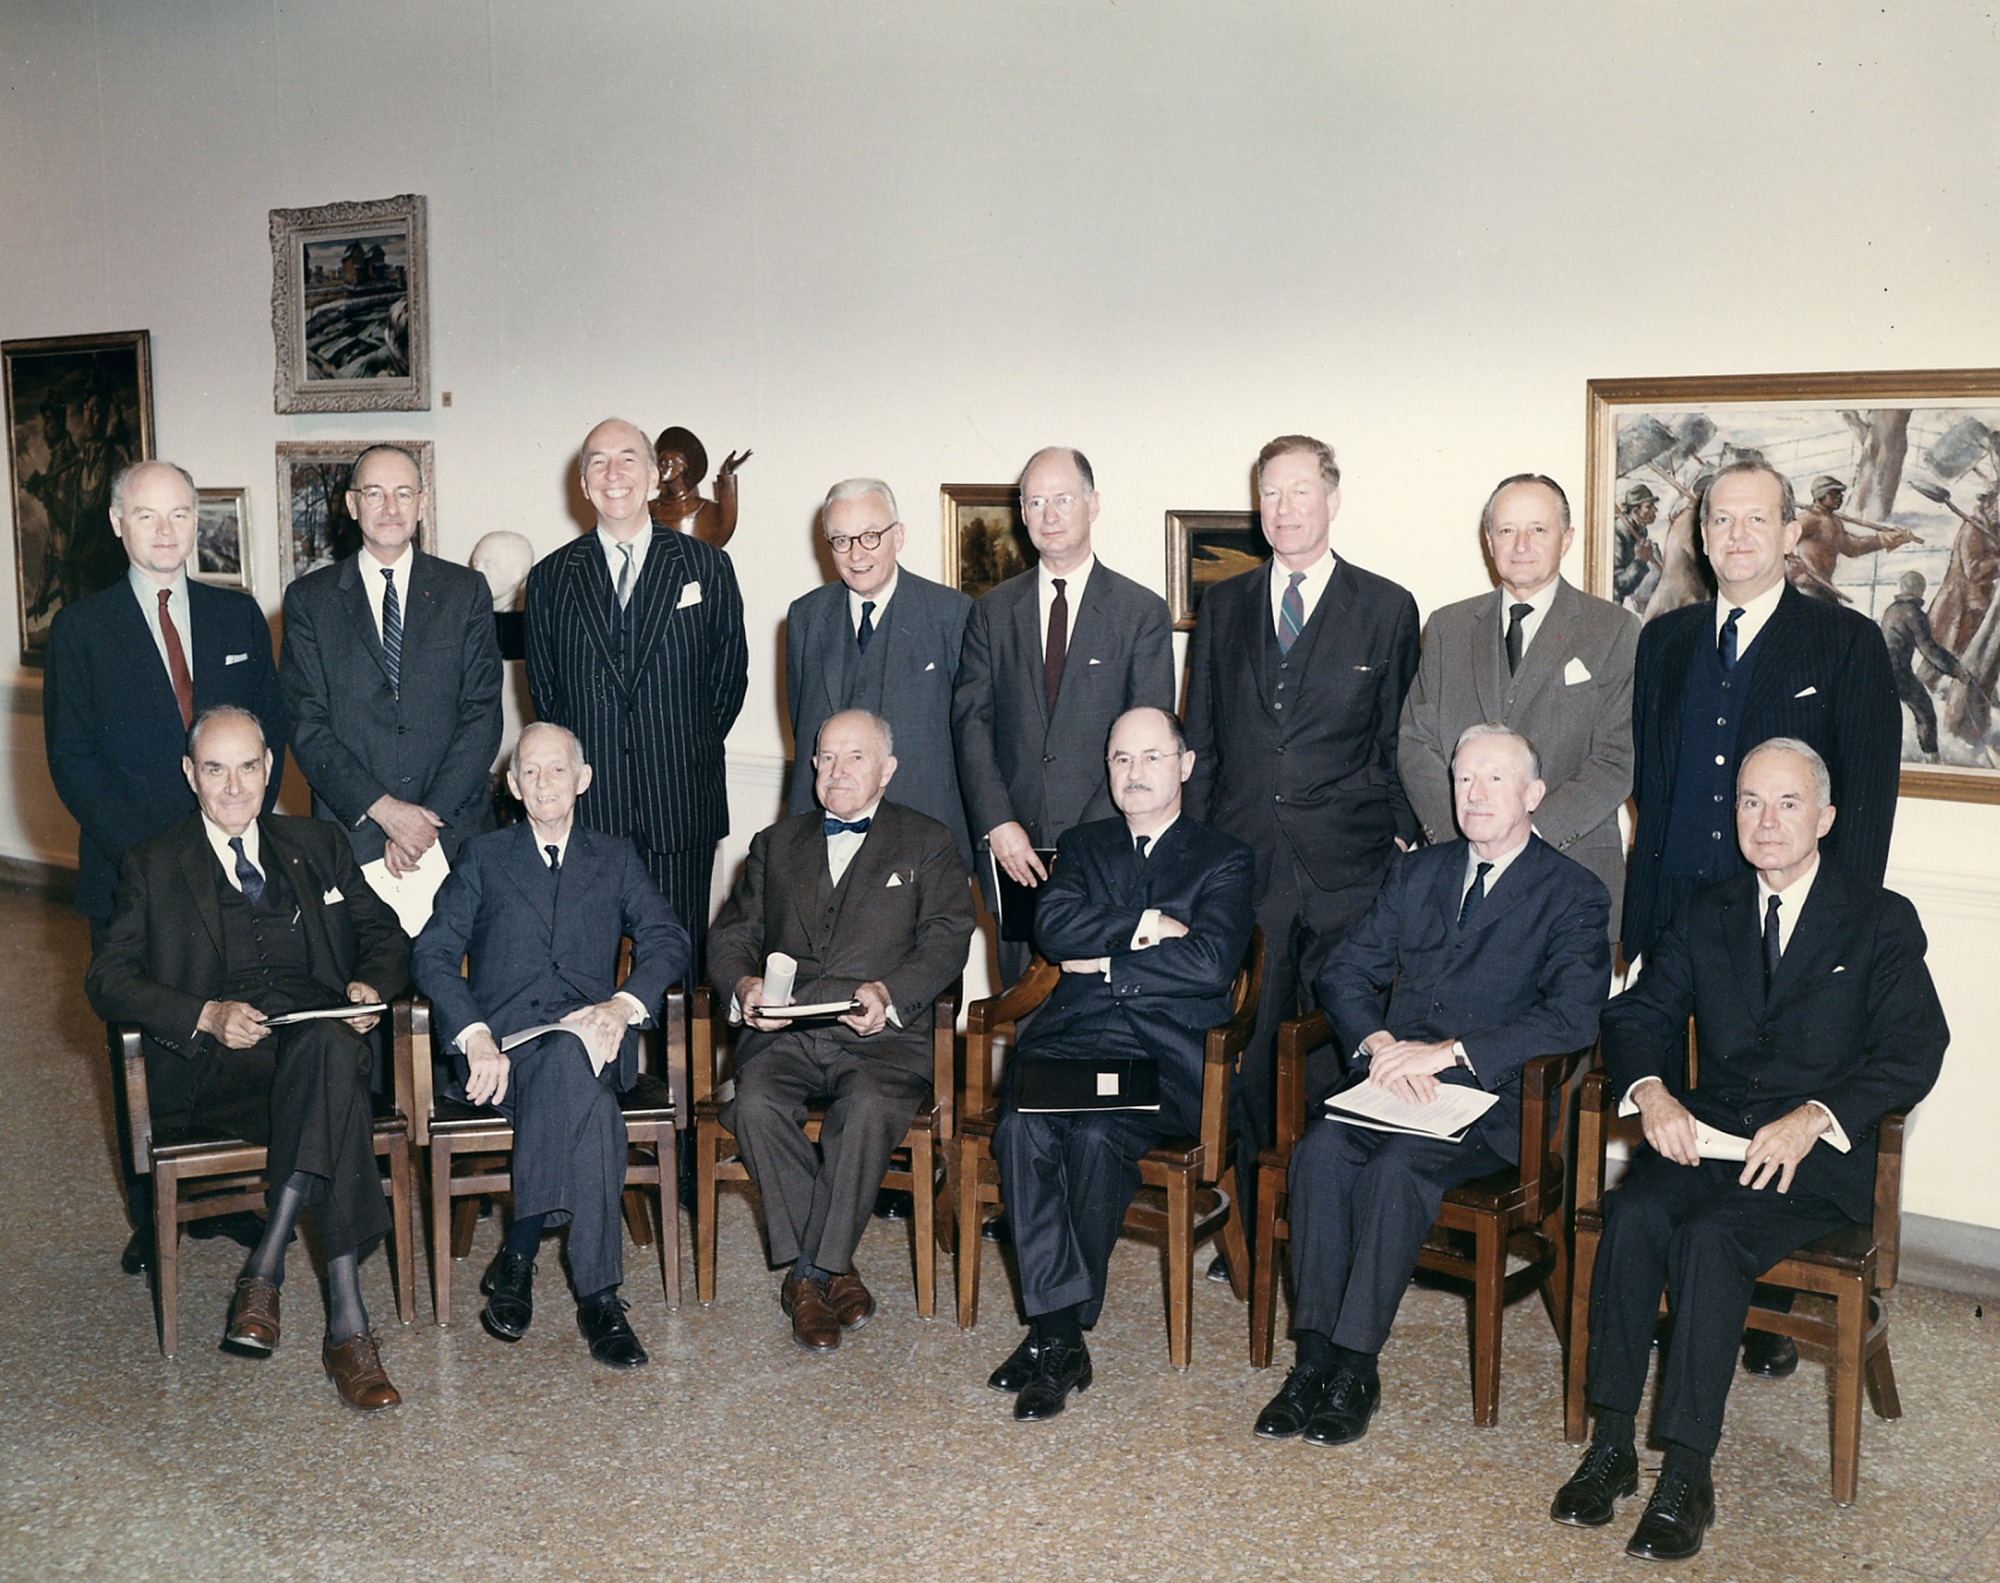 Smithsonian Art Commission Meeting, 1964